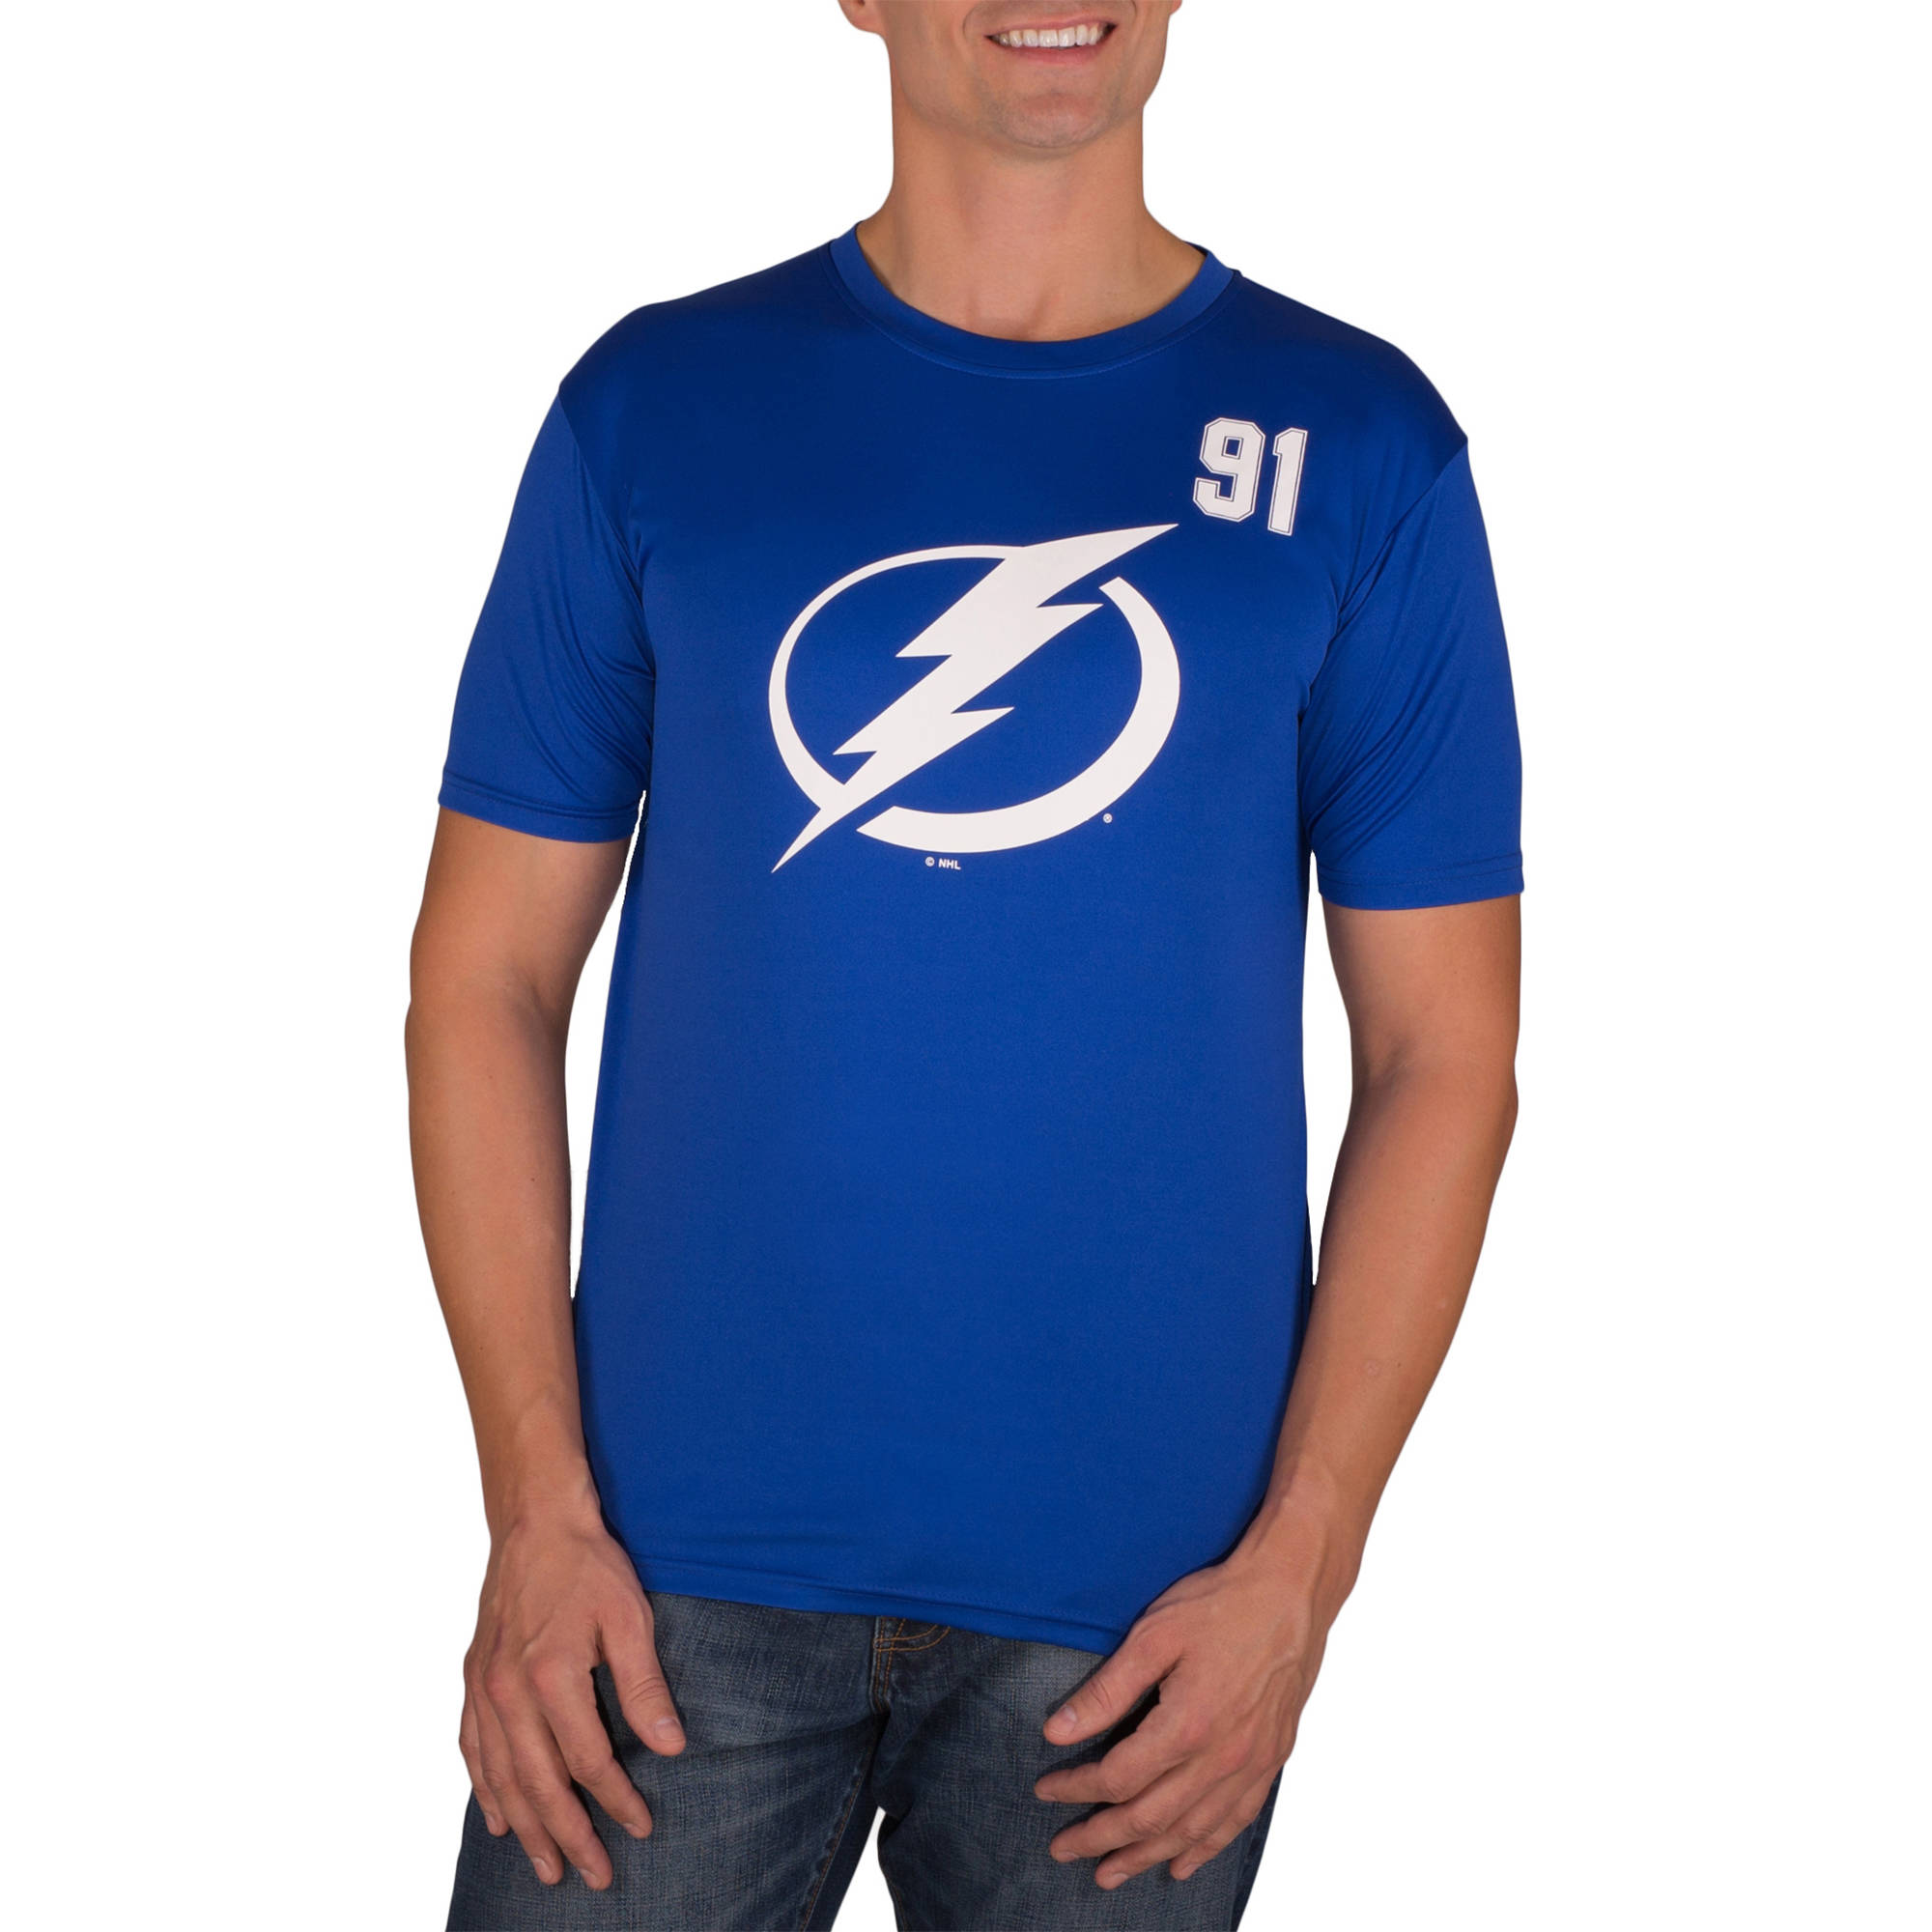 NHL Tampa Bay Lightning Steven Stamkos 91 Men's Athletic-Fit Impact Tee Shirt